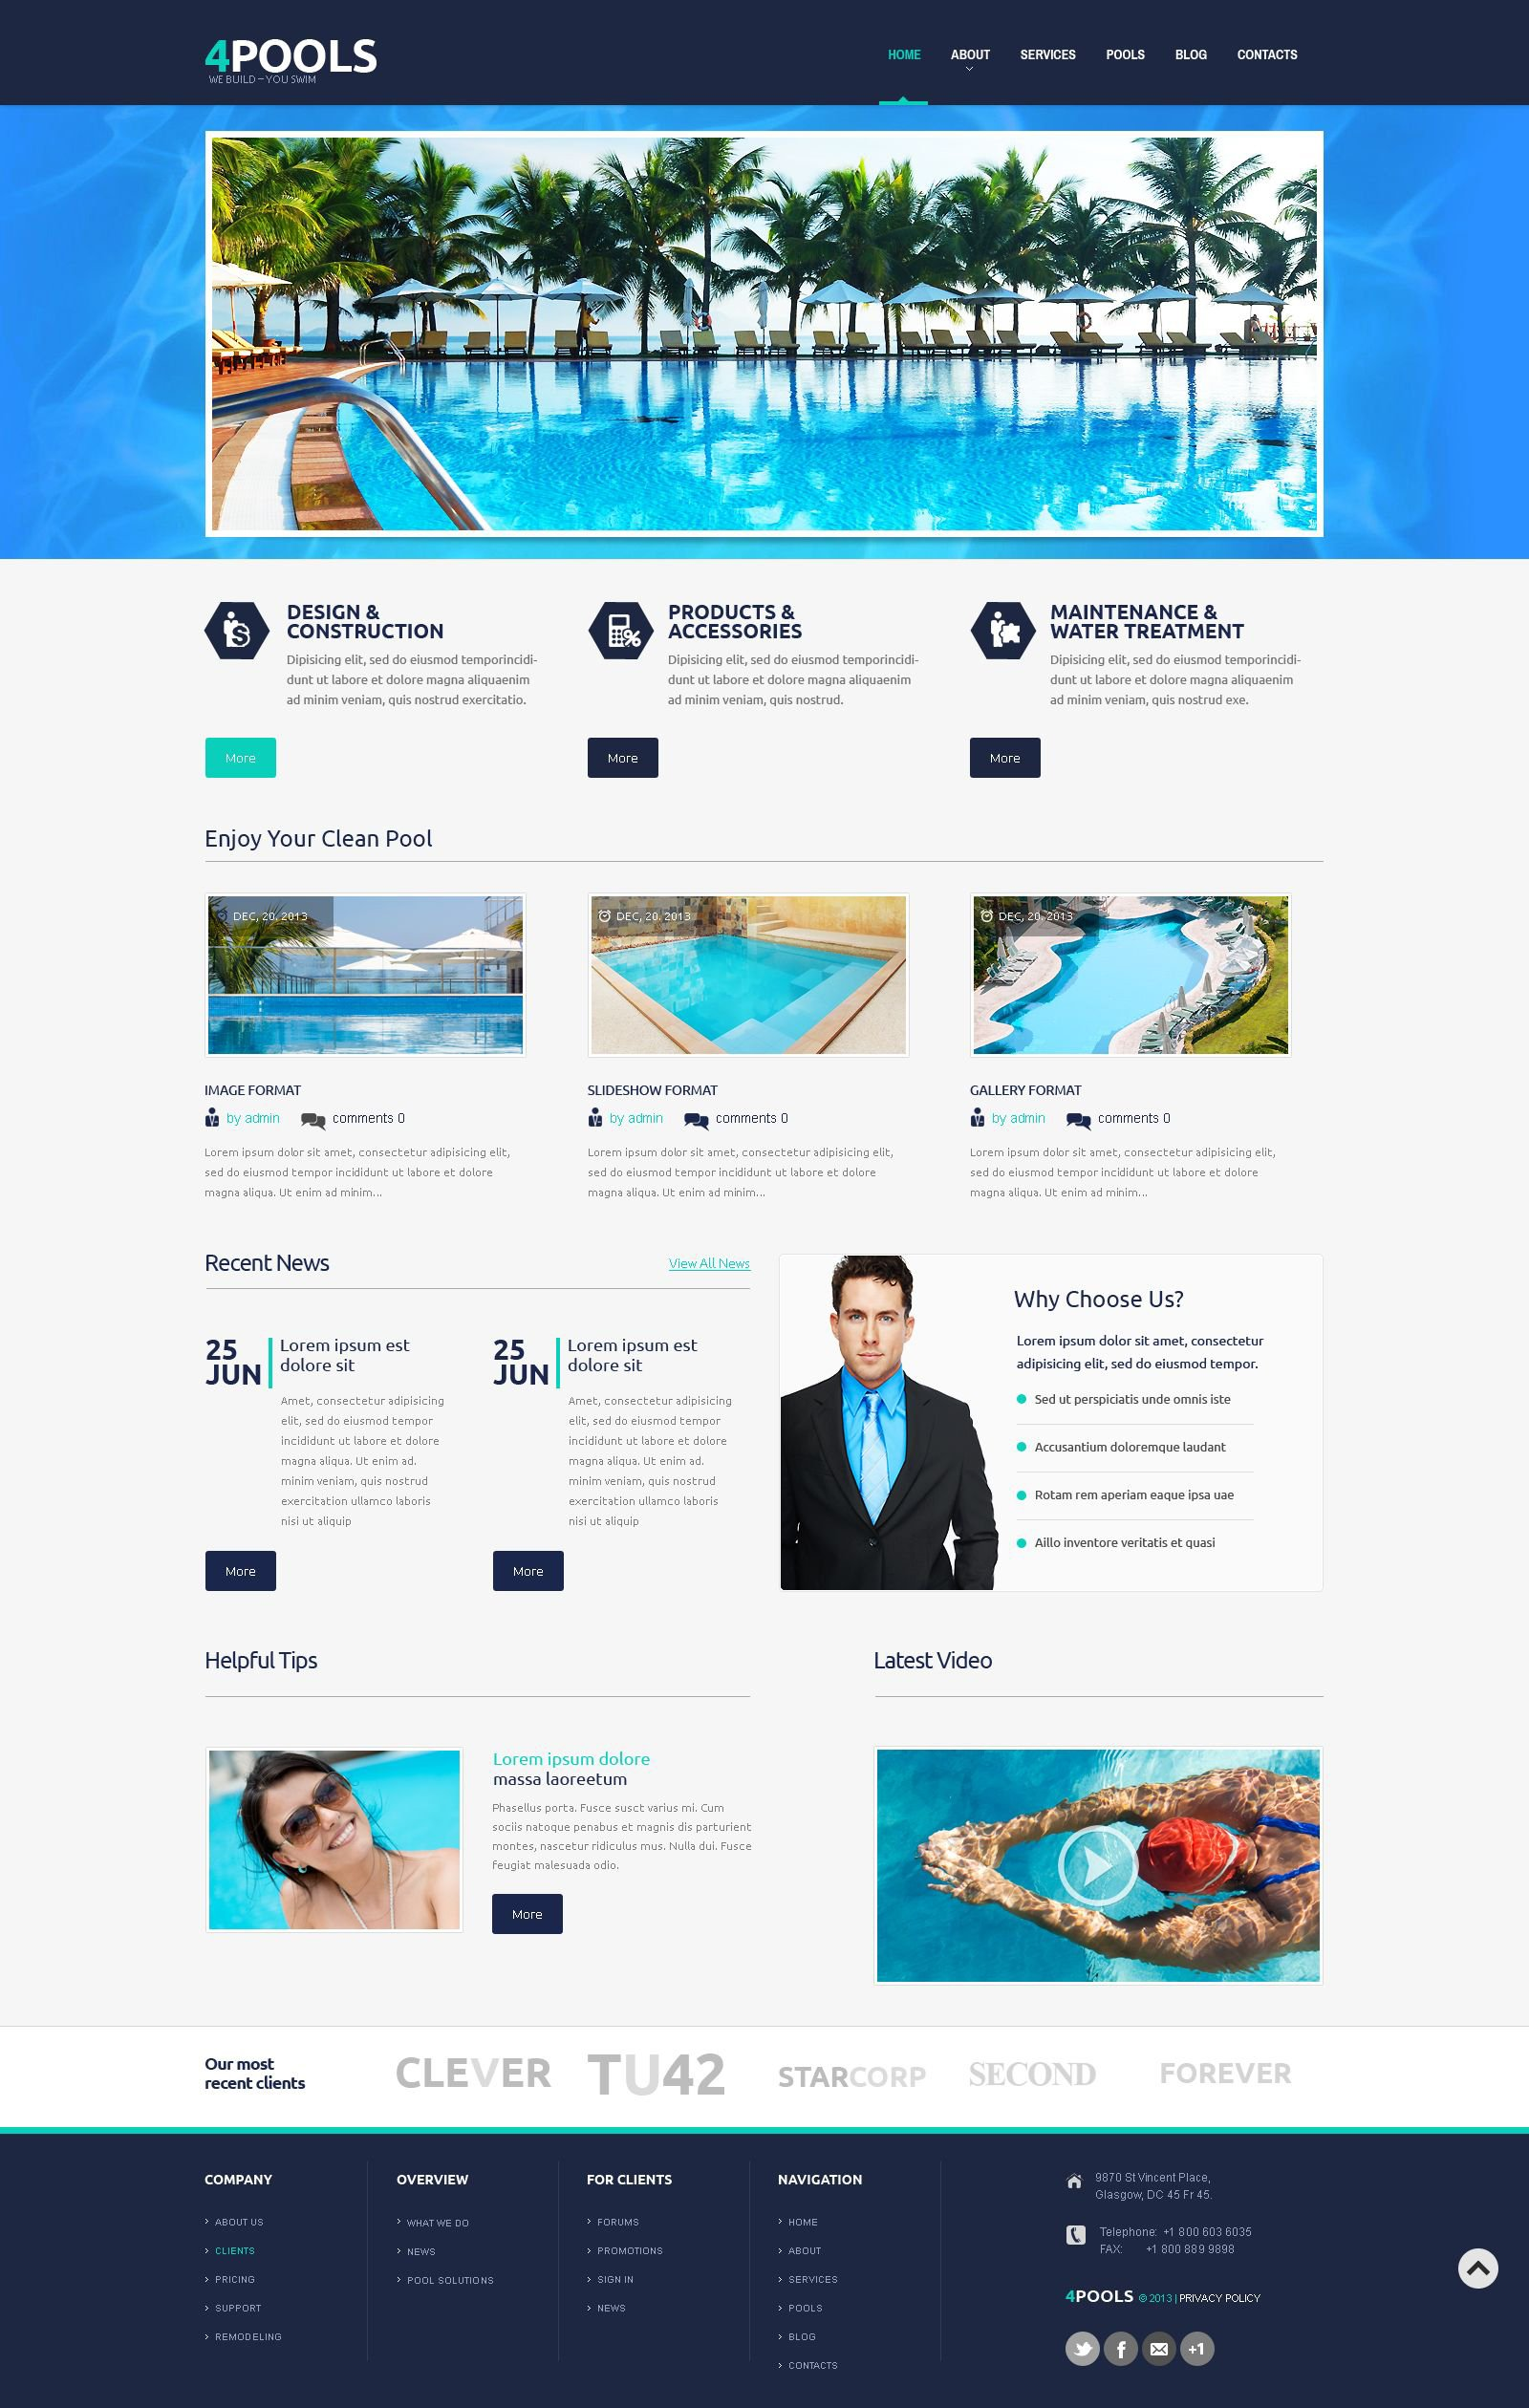 The 4pools Swimming WordPress Design 53432, one of the best WordPress themes of its kind (most popular, maintenance services), also known as 4pools swimming WordPress template, pool WordPress template, builder WordPress template, pool WordPress template, construction WordPress template, maintenance company WordPress template, services WordPress template, estimate WordPress template, cleaner WordPress template, dirty WordPress template, testimonials WordPress template, professional WordPress template, workteam WordPress template, tips WordPress template, client WordPress template, price WordPress template, tidying up WordPress template, sponge WordPress template, decoration WordPress template, preventative WordPress template, plumbing WordPress template, repair WordPress template, resurfacing WordPress template, painting WordPress template, fiberglass WordPress template, plaster WordPress template, deck WordPress template, drainage WordPress template, renovation and related with 4pools swimming, pool, builder, pool, construction, maintenance company, services, estimate, cleaner, dirty, testimonials, professional, workteam, tips, client, price, tidying up, sponge, decoration, preventative, plumbing, repair, resurfacing, painting, fiberglass, plaster, deck, drainage, renovation, etc.